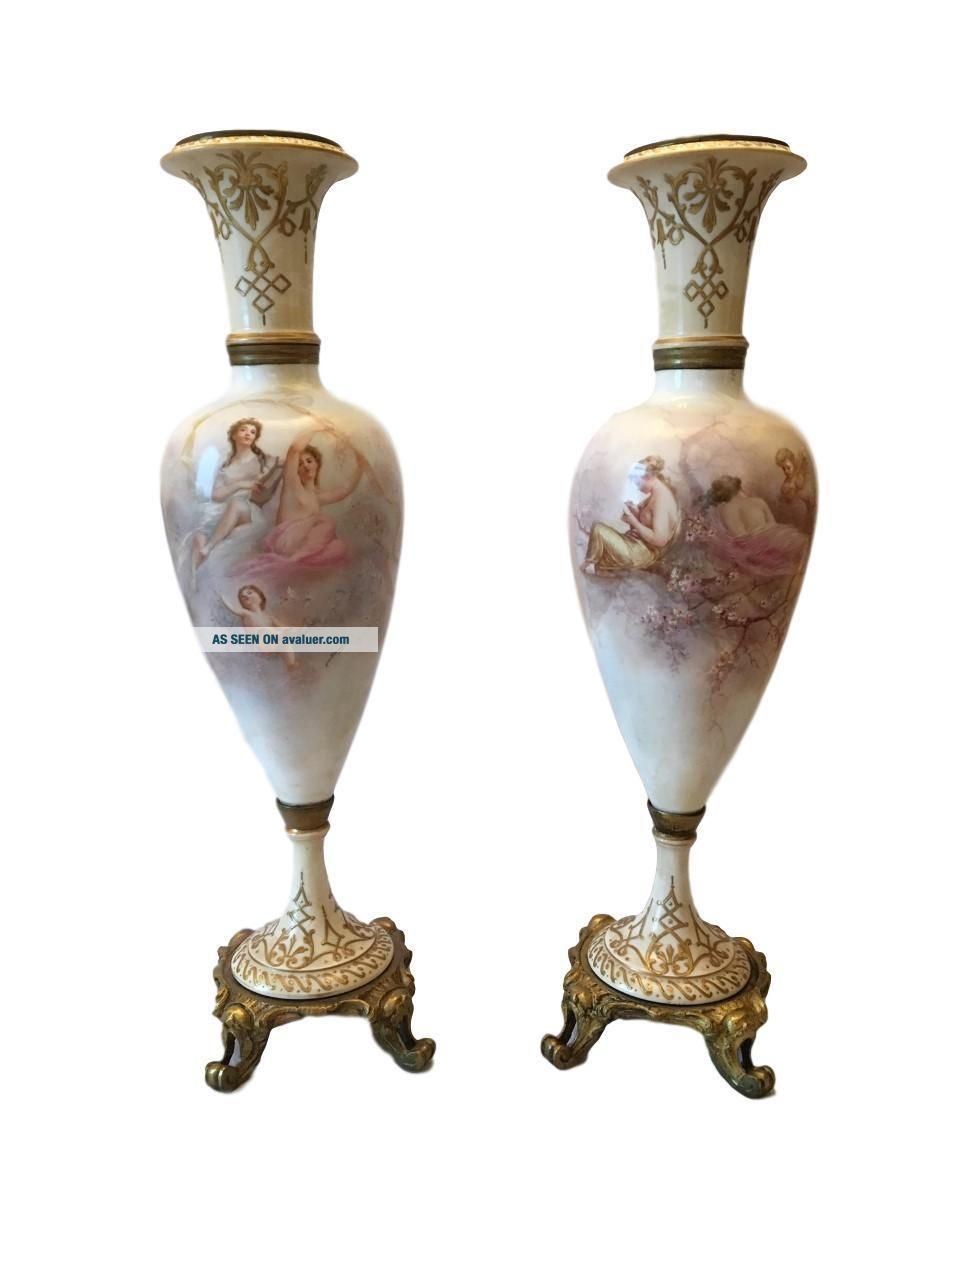 Monumental Antique Sevres Hand Painted Porcelain Gilt Bronze Vase